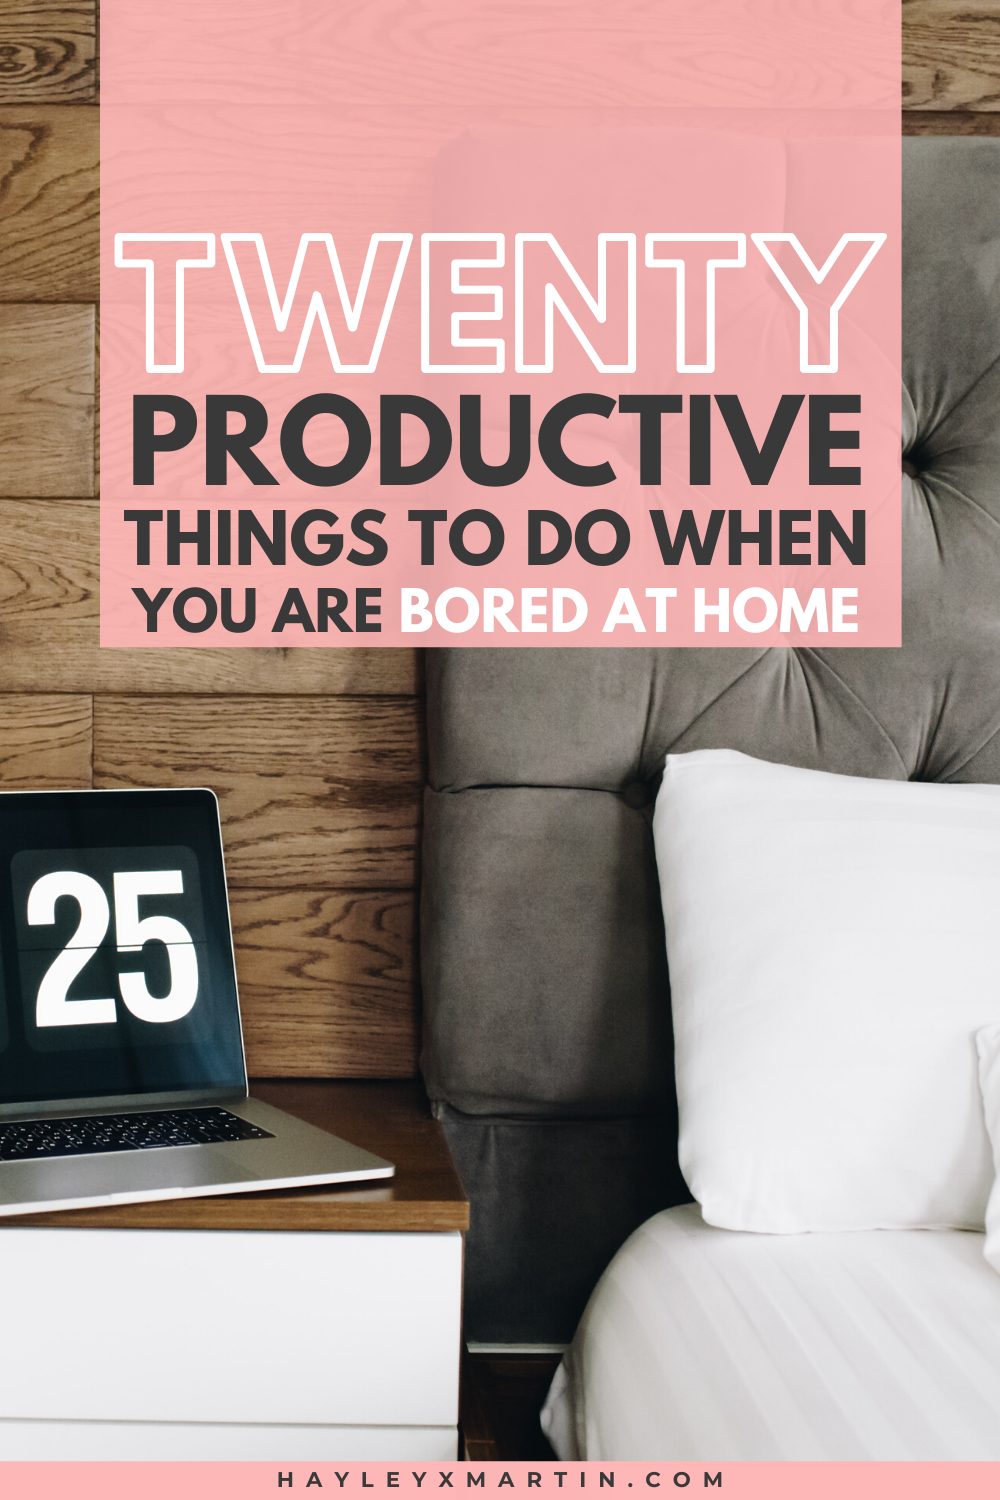 TWENTY PRODUCTIVE THINGS TO DO WHEN YOU ARE BORED AT HOME | HAYLEYXMARTIN